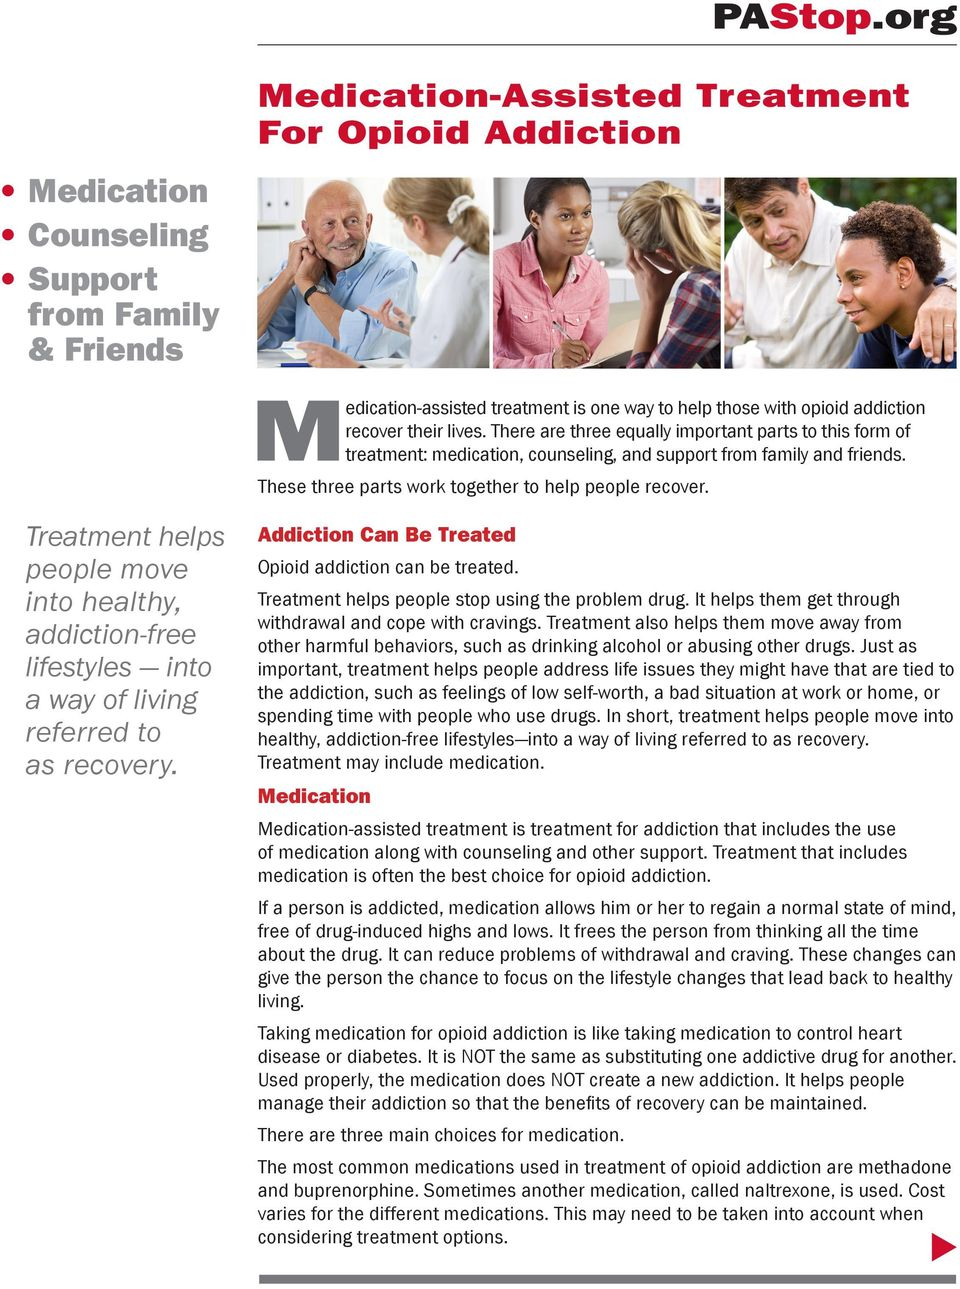 Treatment helps people move into healthy, addiction-free lifestyles into a way of living referred to as recovery. Addiction Can Be Treated Opioid addiction can be treated.